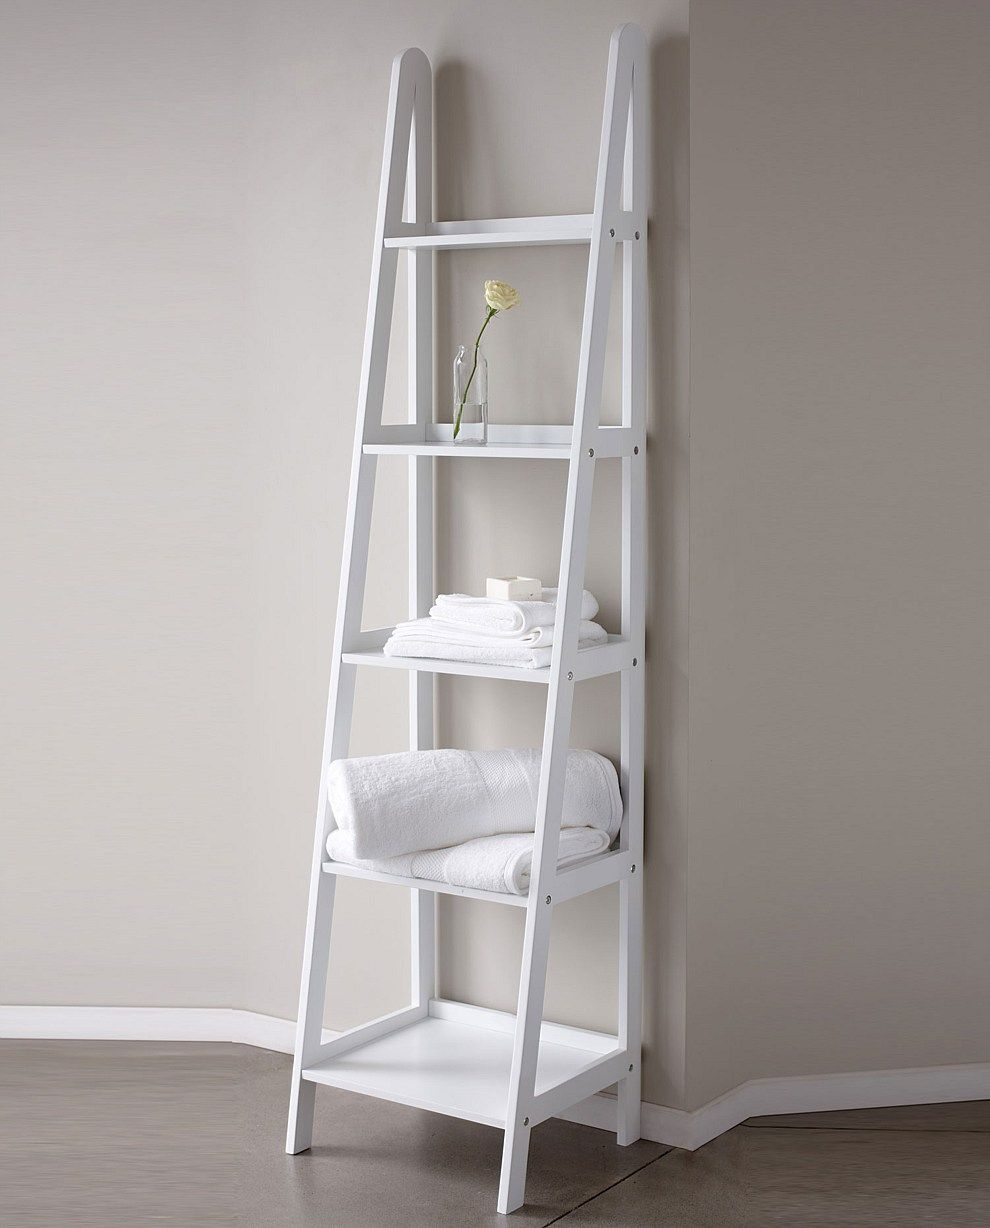 I Ve Wanted Some Ladder Shelves For Quite A While Now Classic Bathroom Furniture Ladder Shelf Shelves